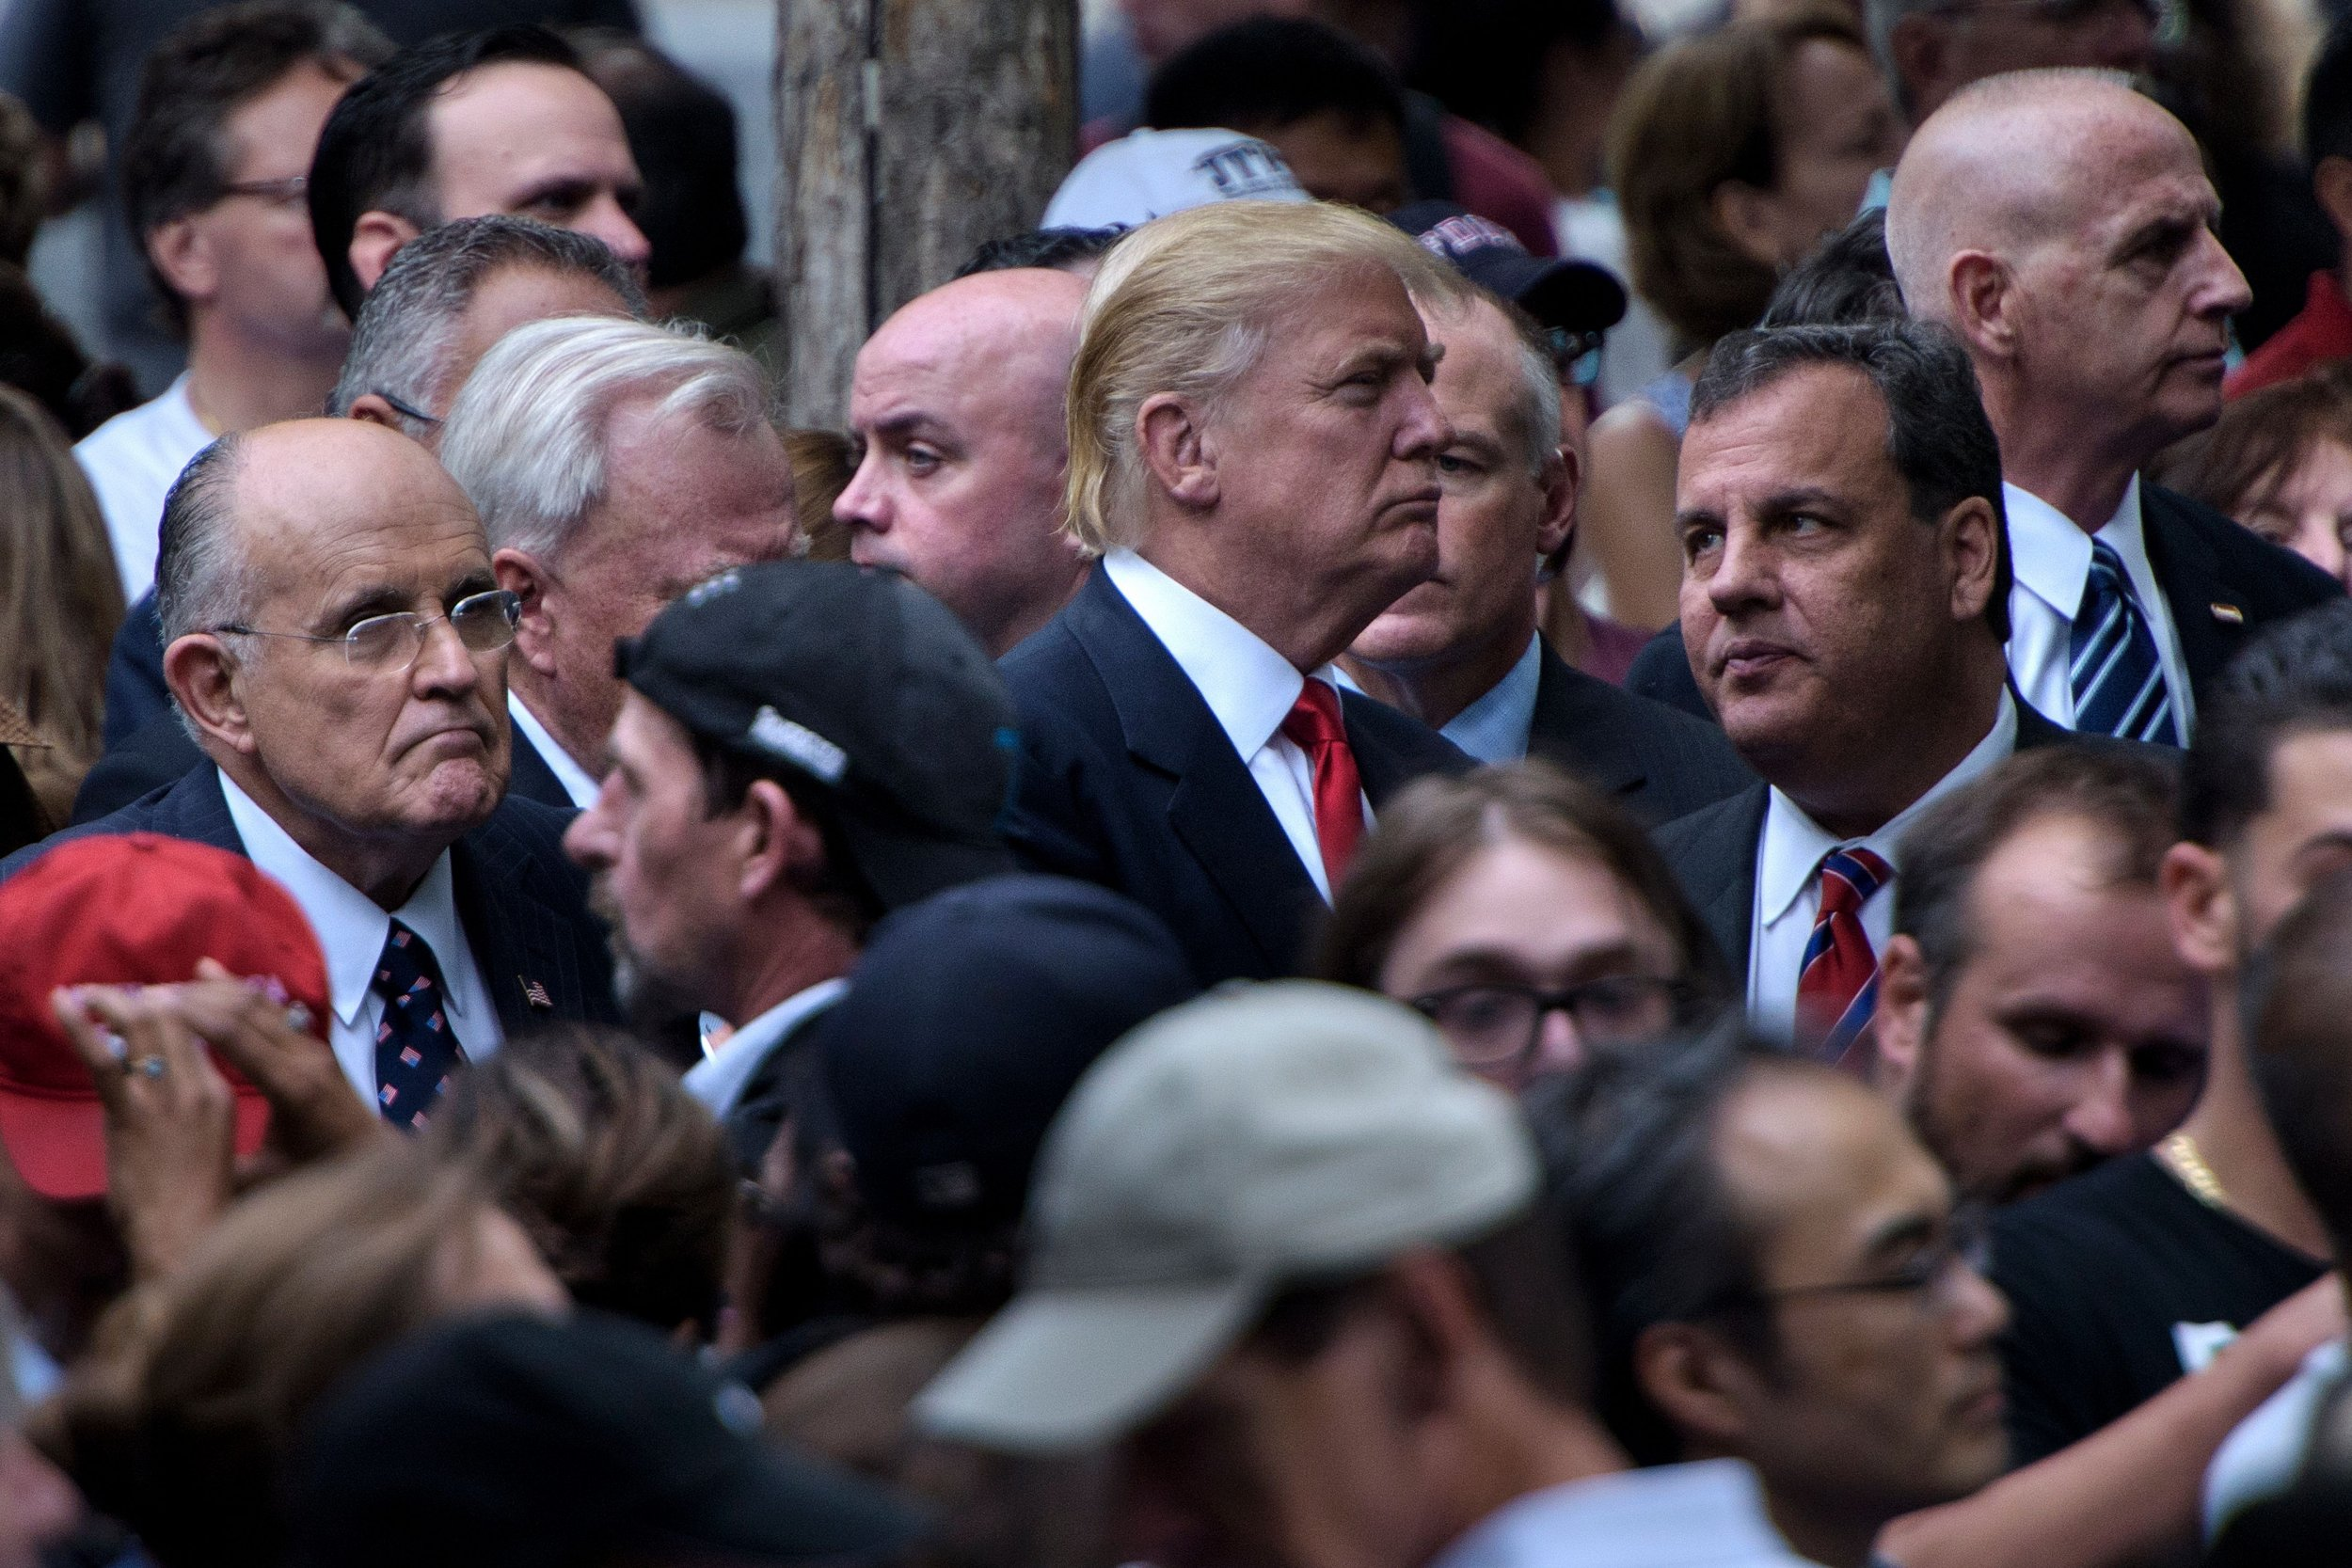 Trump, Giuliani and Christie